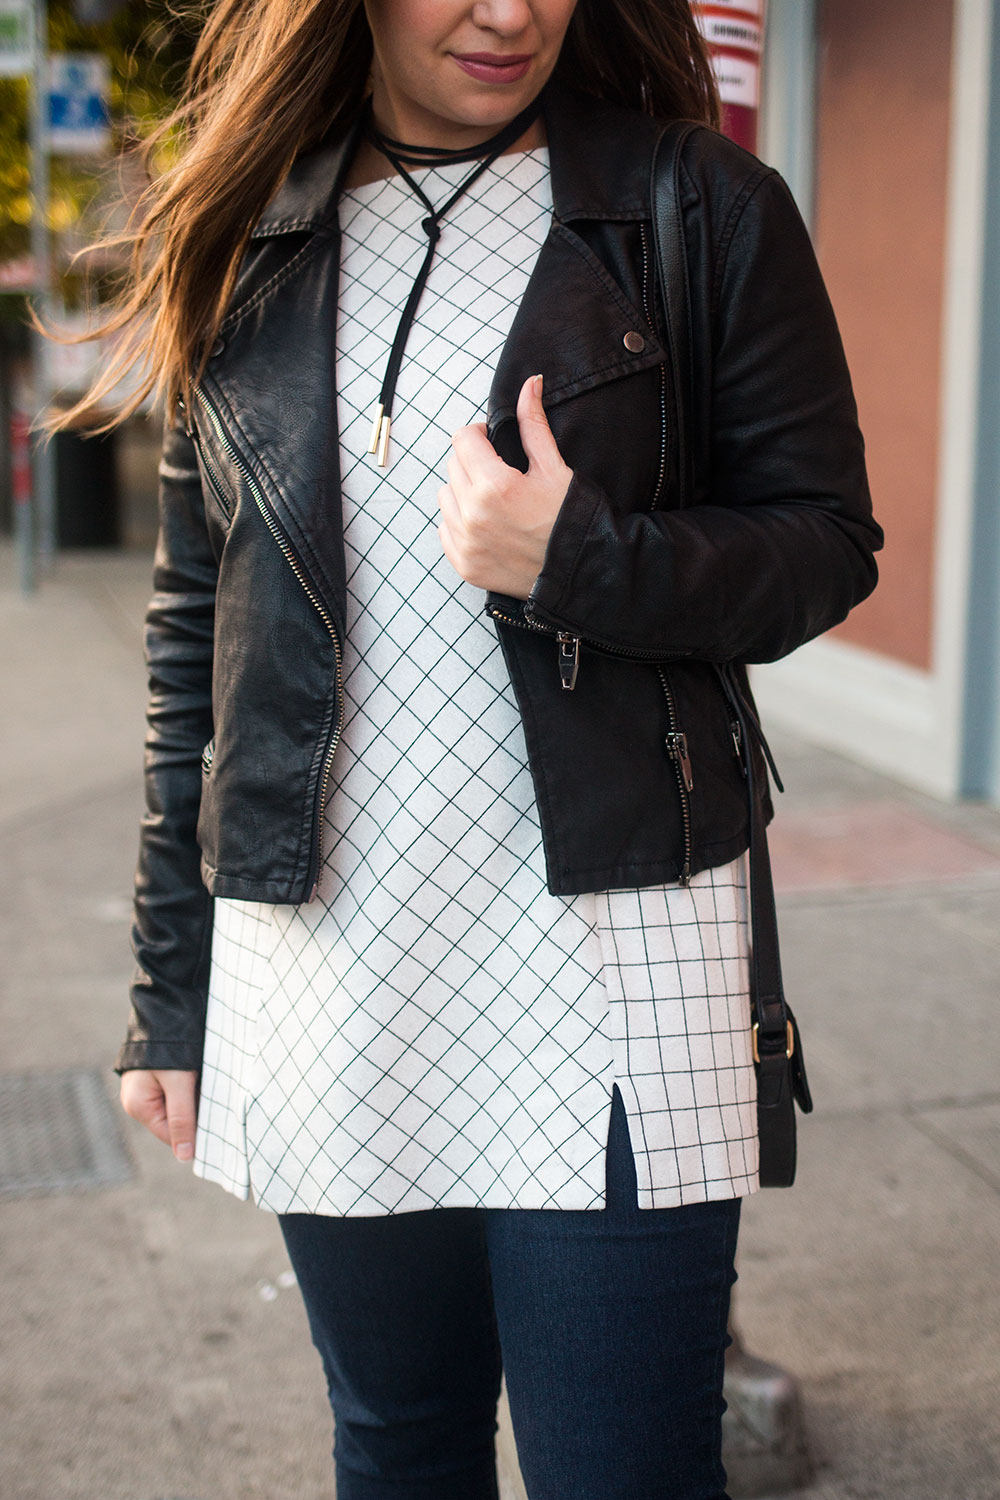 Moto Jacket with Checkered Top Outfit // Hello Rigby Seattle Fashion Blog